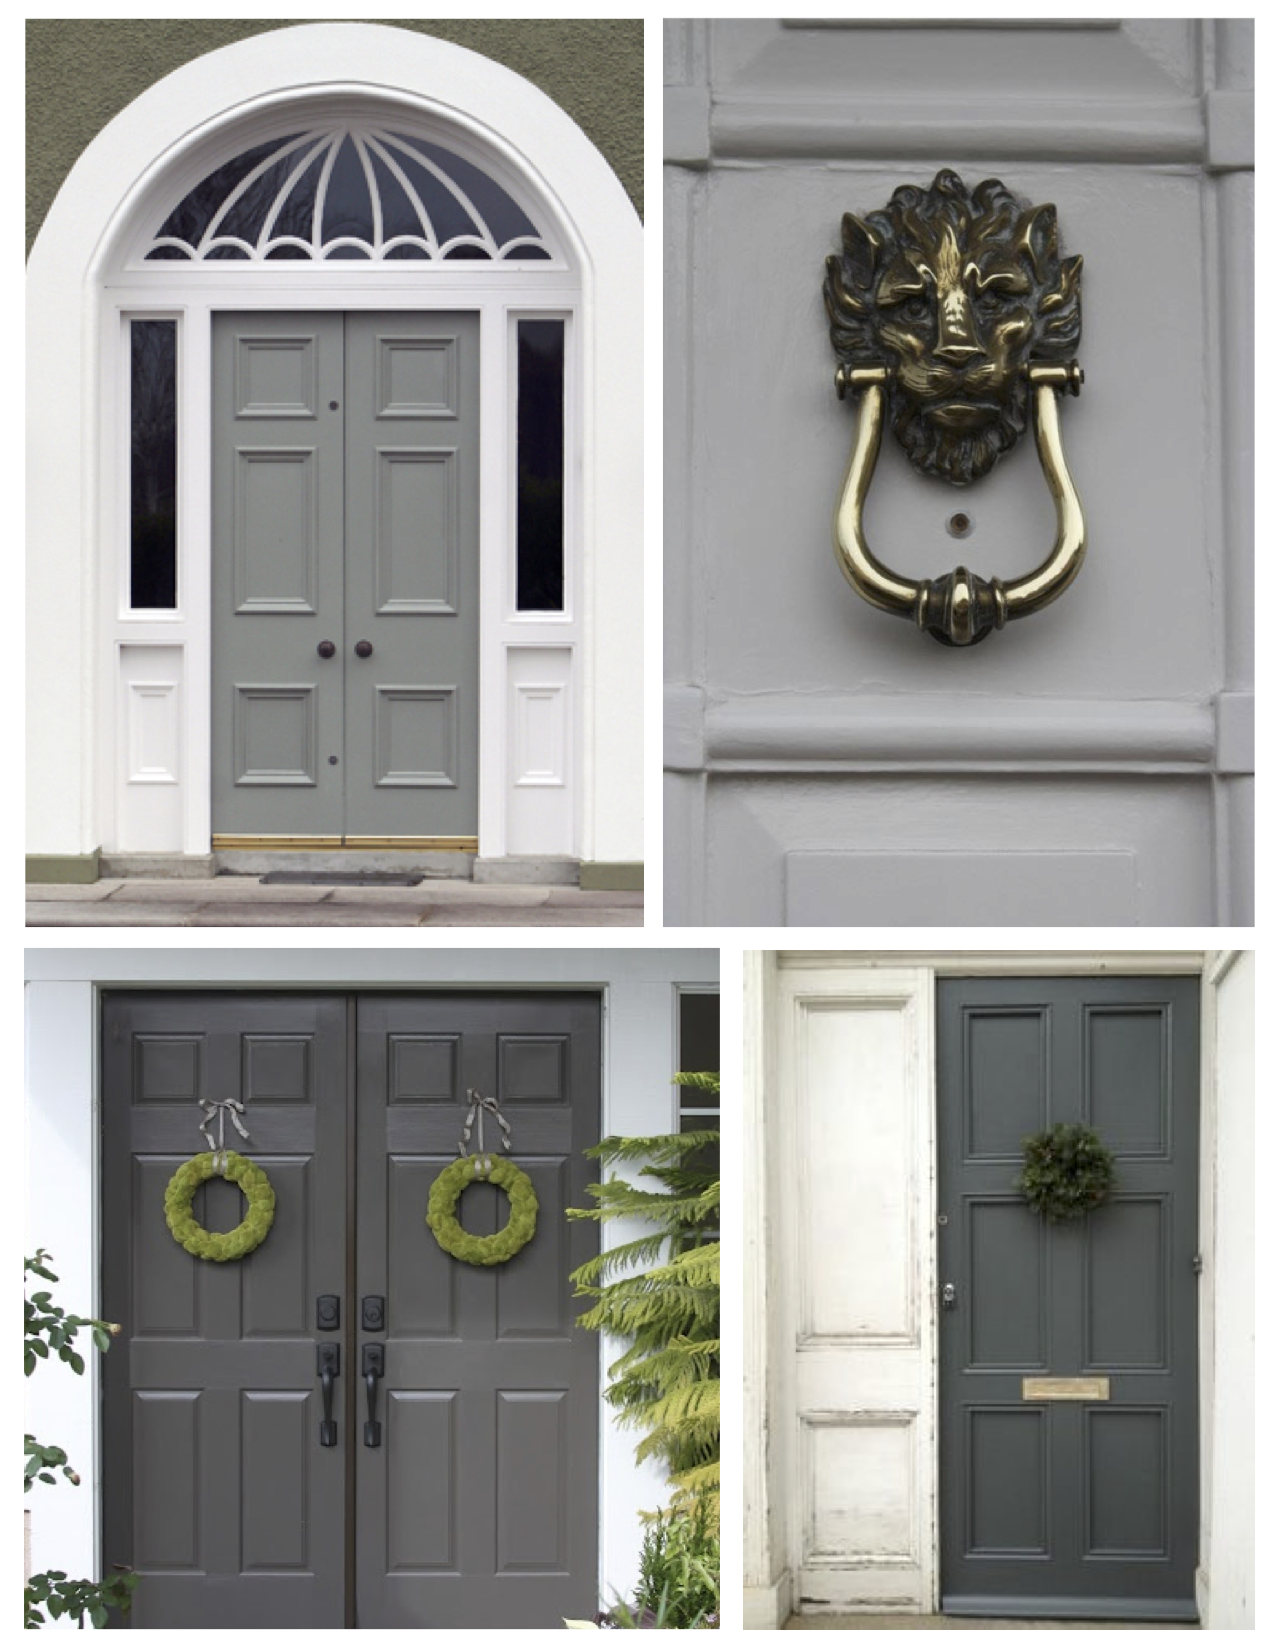 Exterior Color Inspirations: The Understated Elegance Of The ...